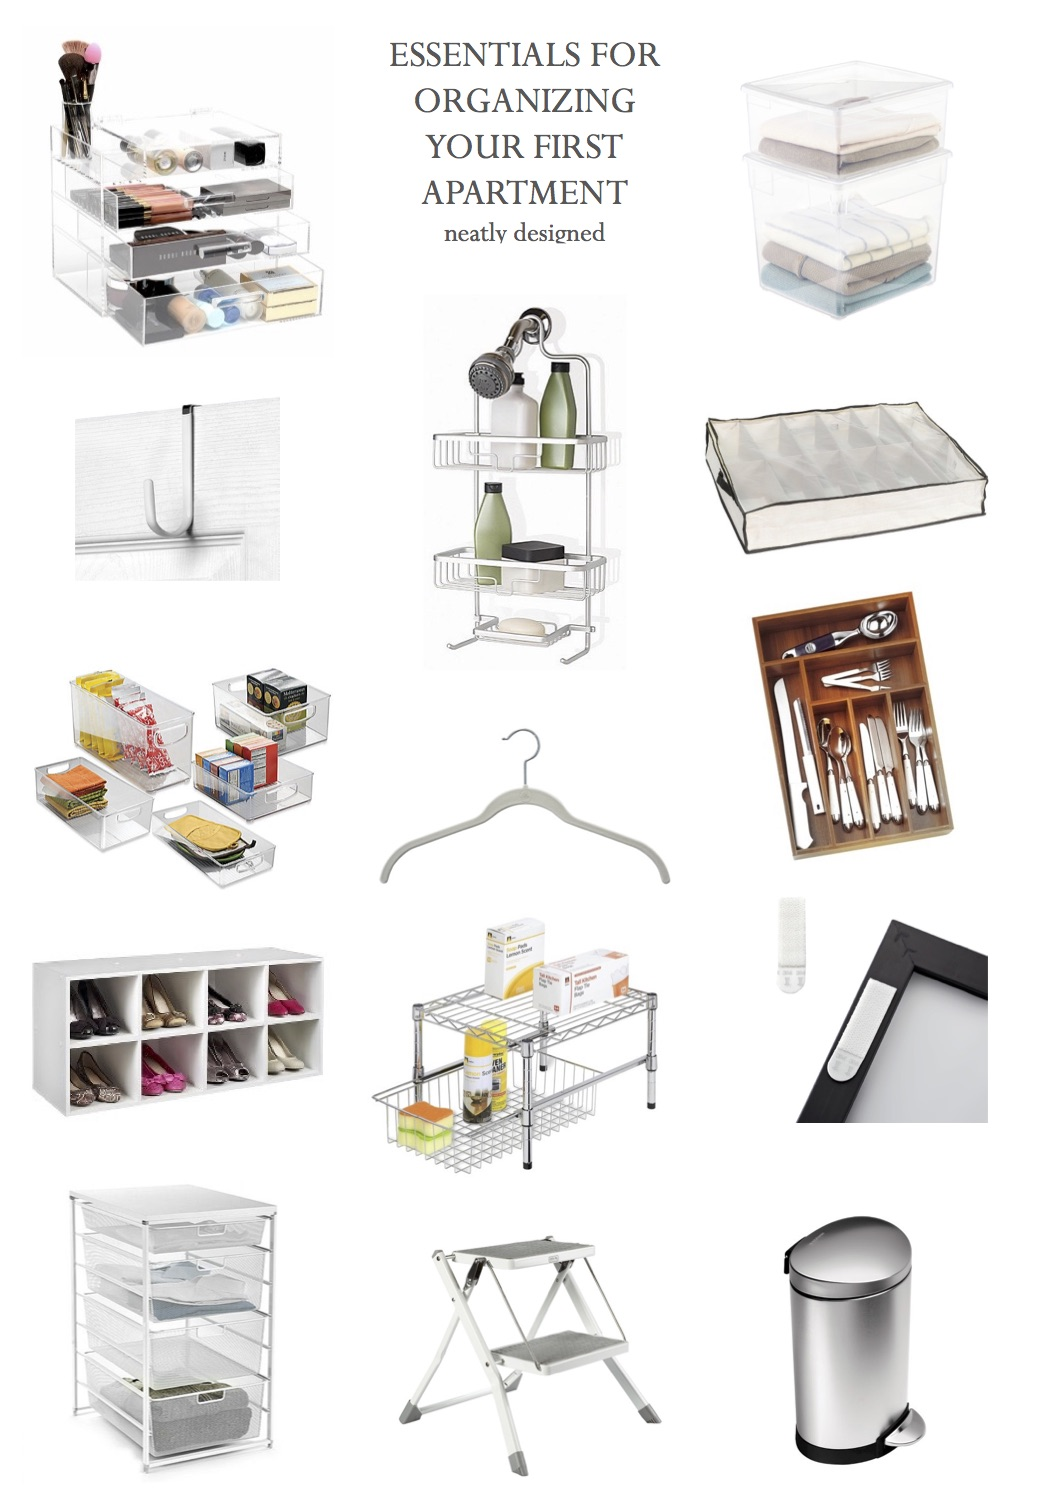 Organizing Your First Apartment